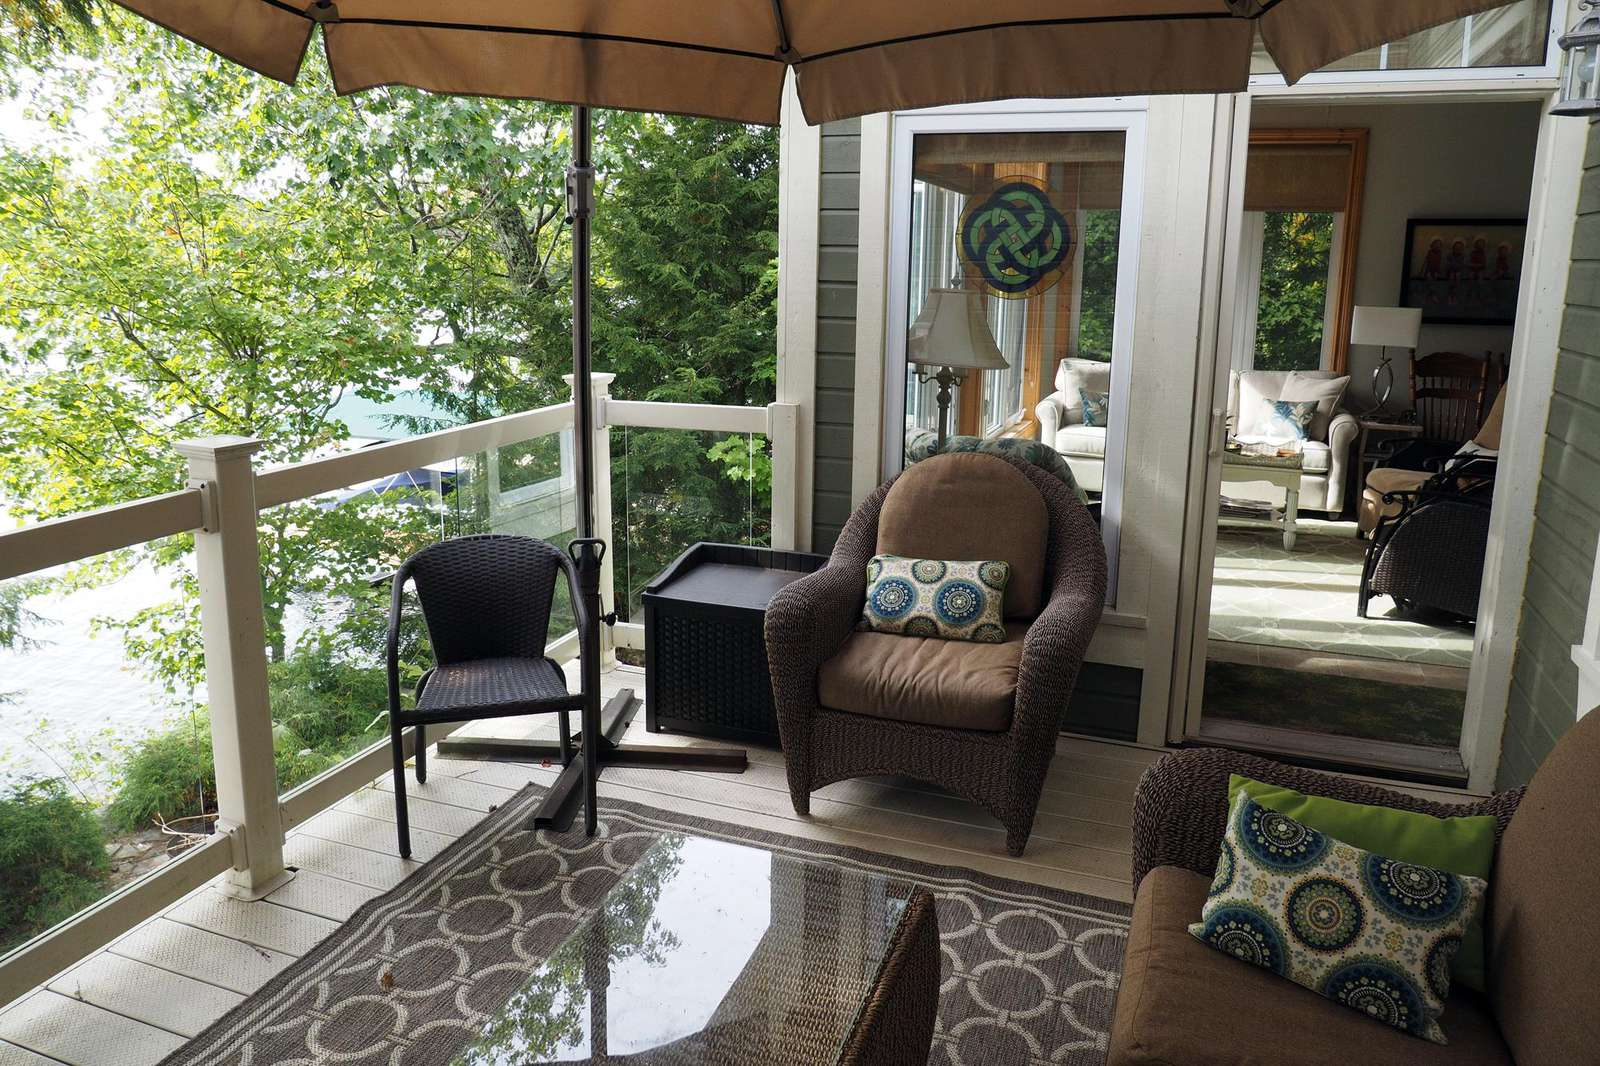 Small Deck off Seating Area